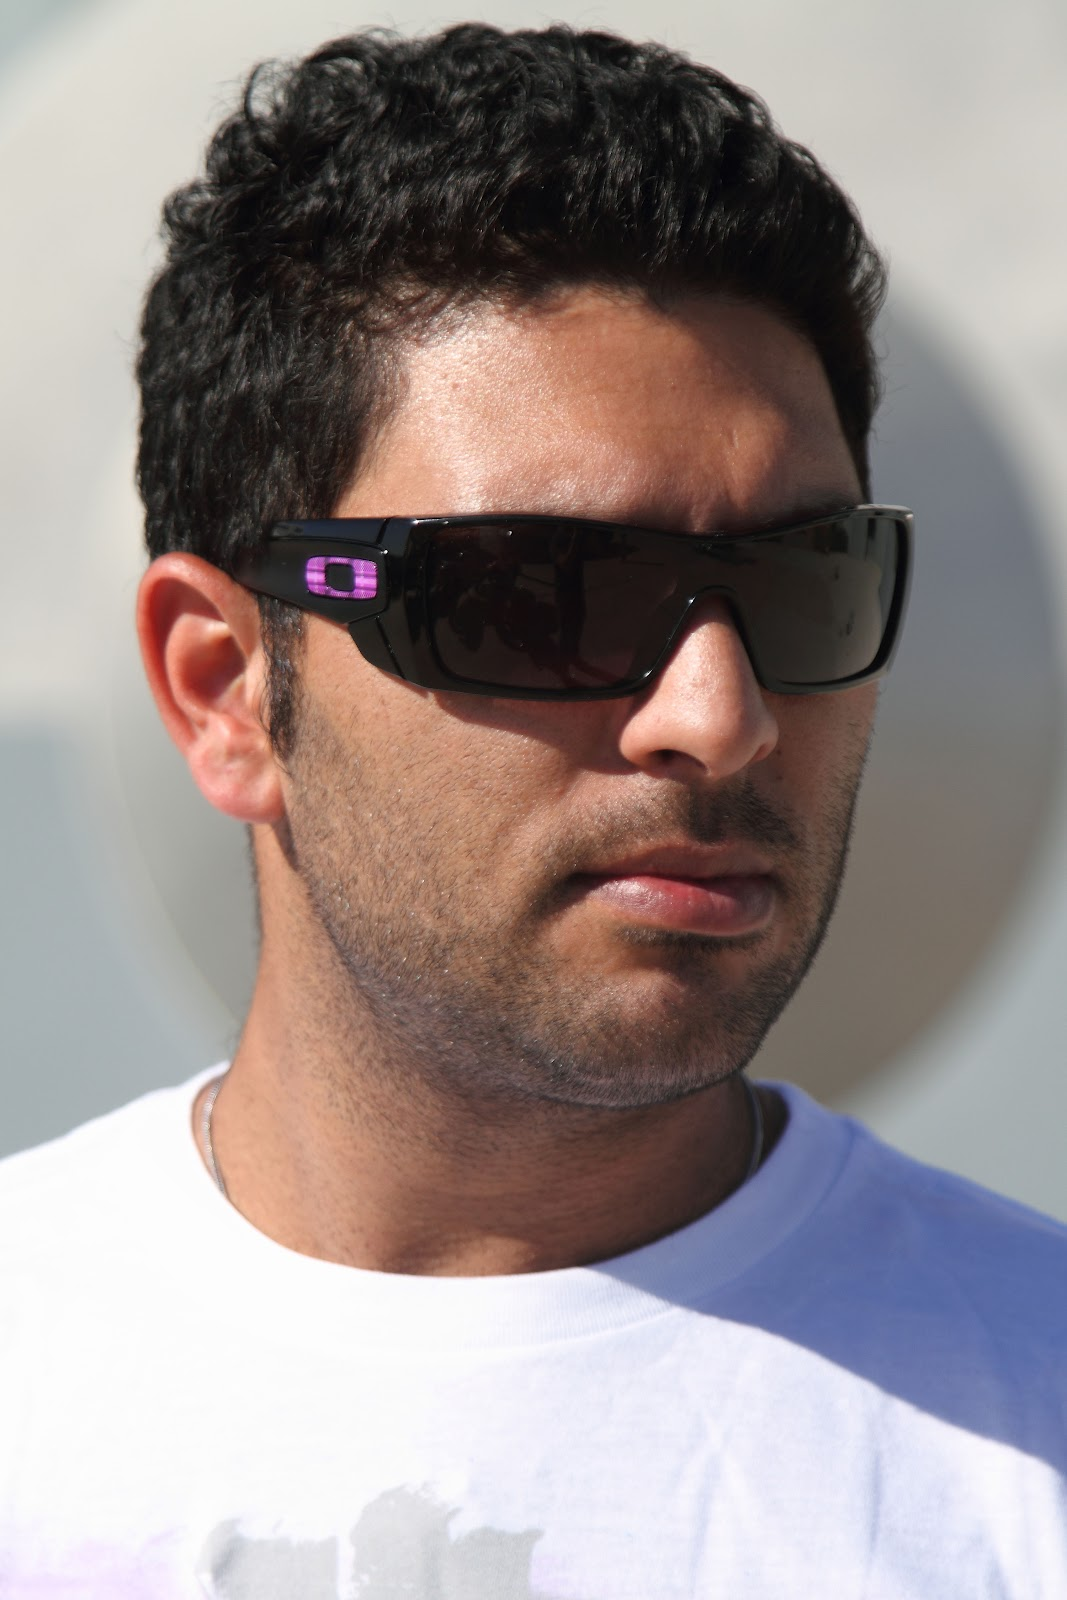 Fast Sports Cars Wallpapers Yuvraj Singh Hd Wallpapers Iphone Wallpapers